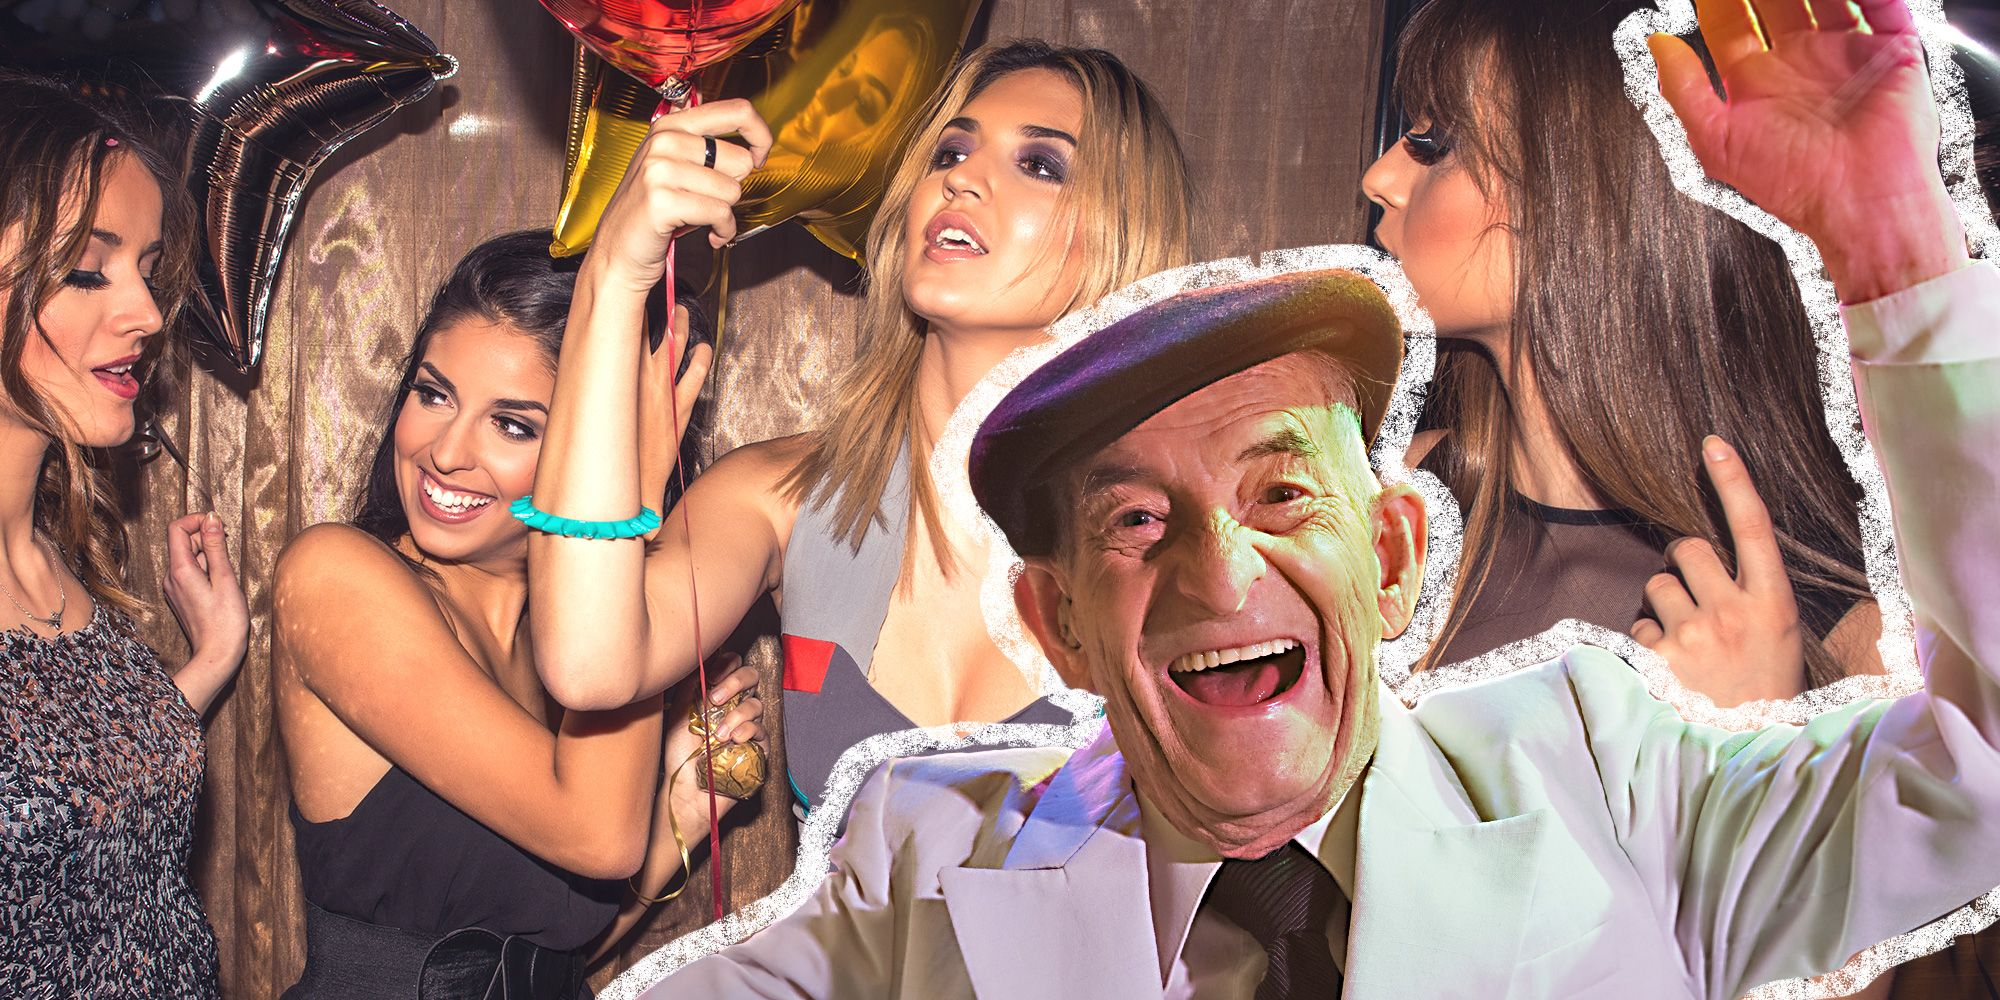 How Old Is Too Old to Go Out to a Club? - Am I Too Old for